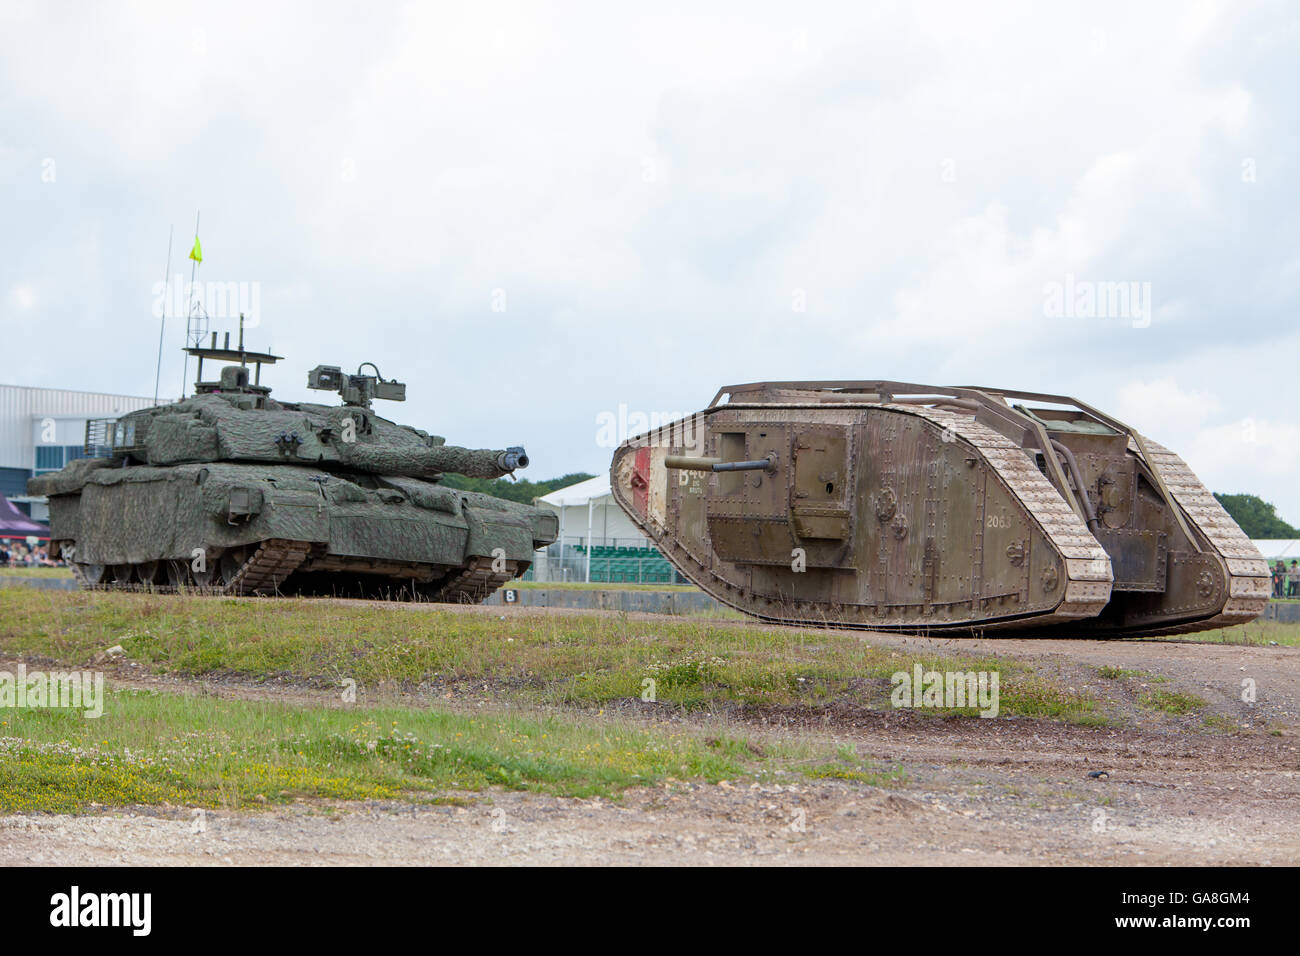 Tankfest, bovington, 2016 Mark IV First World War tank compared to the latest Challenger 2 British Army Tank - Stock Image